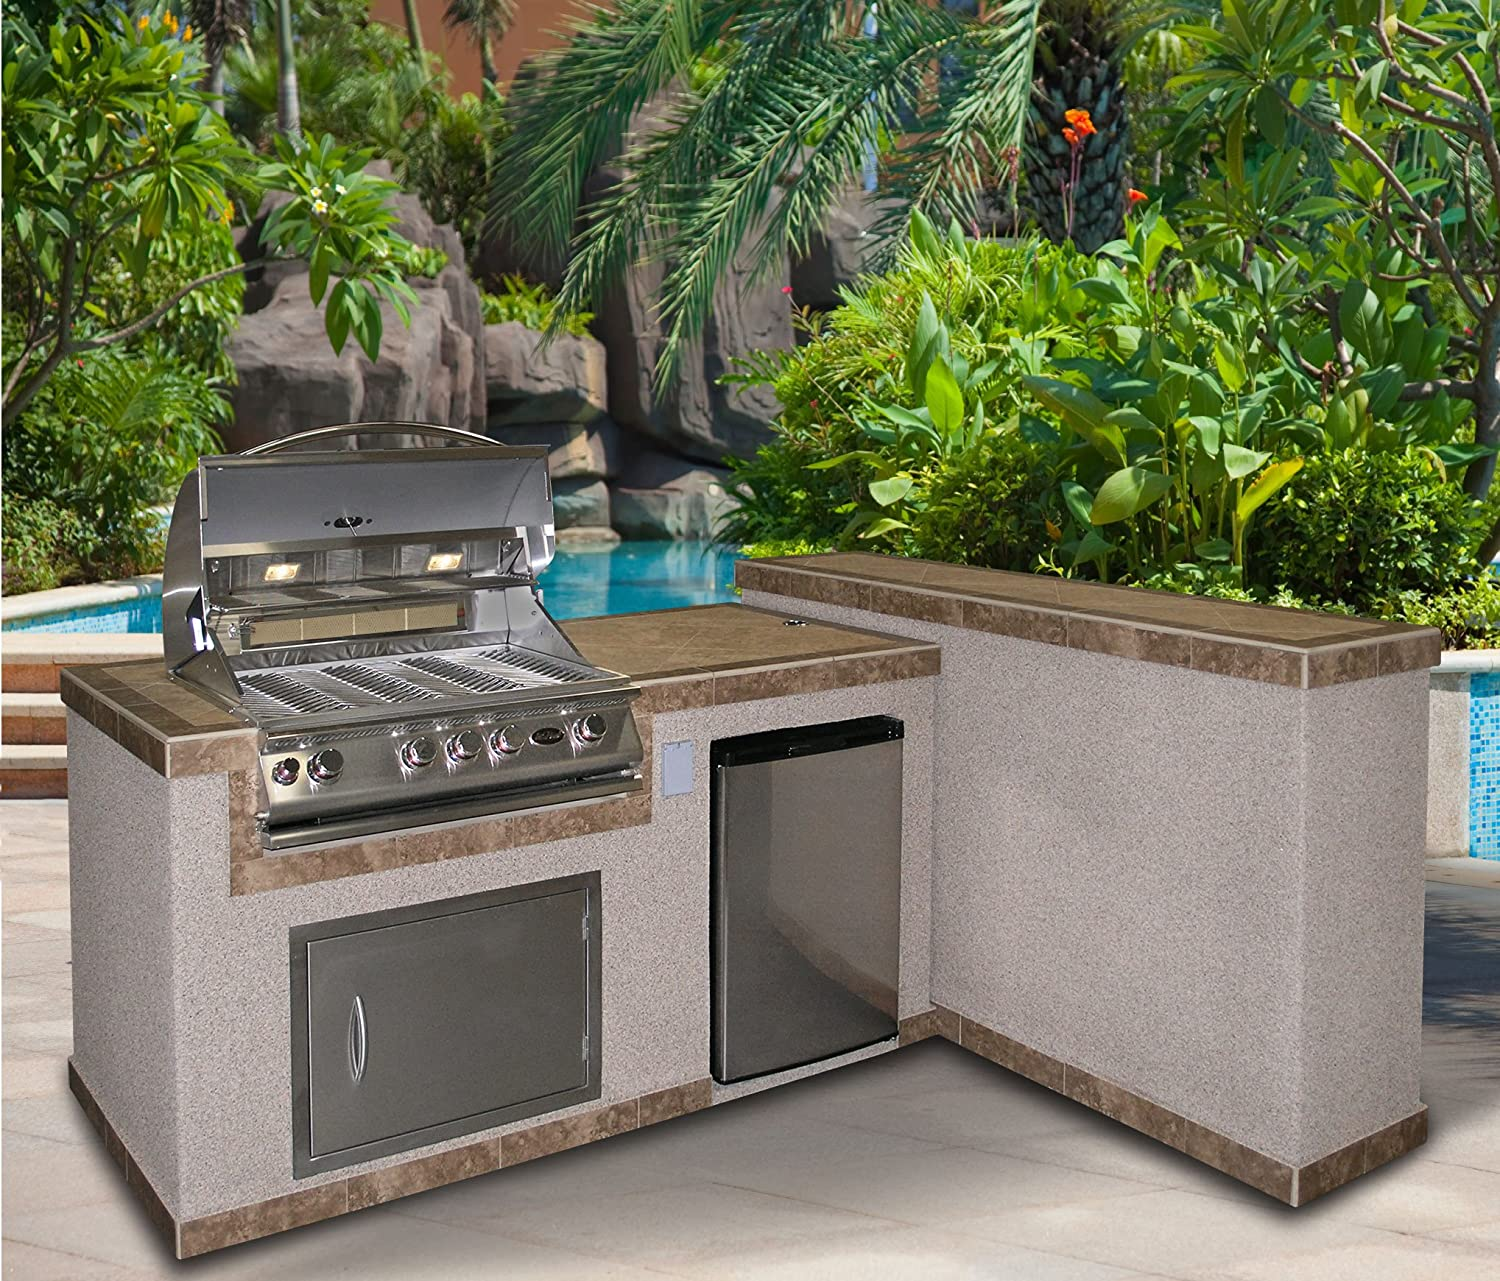 Cal Flame 6\' Outdoor Kitchen Island 2 Piece e6026 4-Burner Built in Grill,  27\